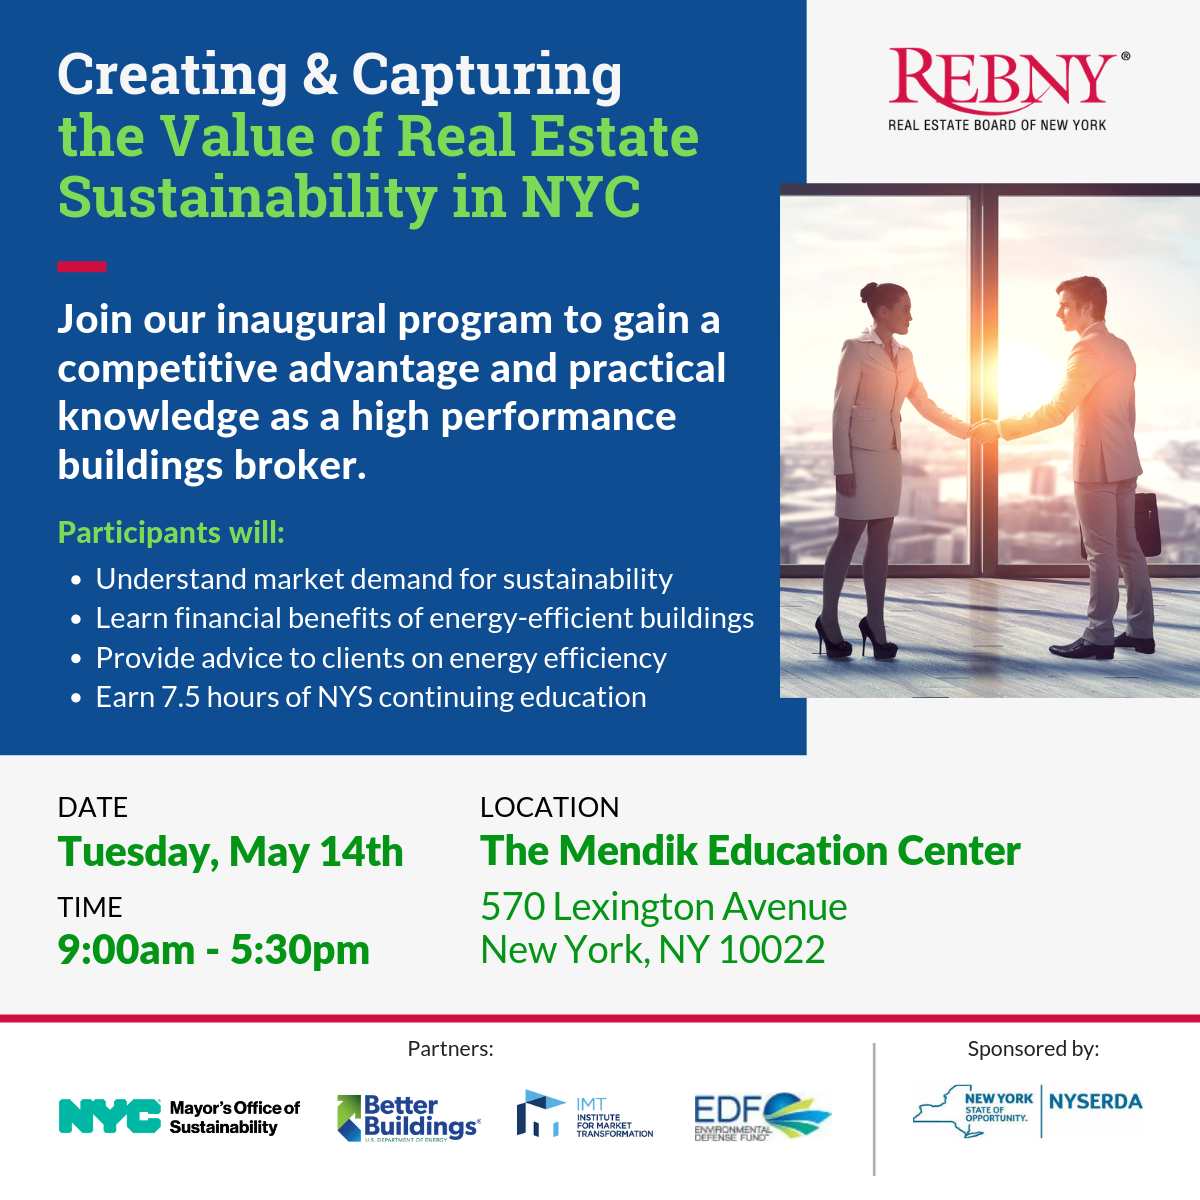 Creating & Capturing the Value of Real Estate Sustainability in NYC